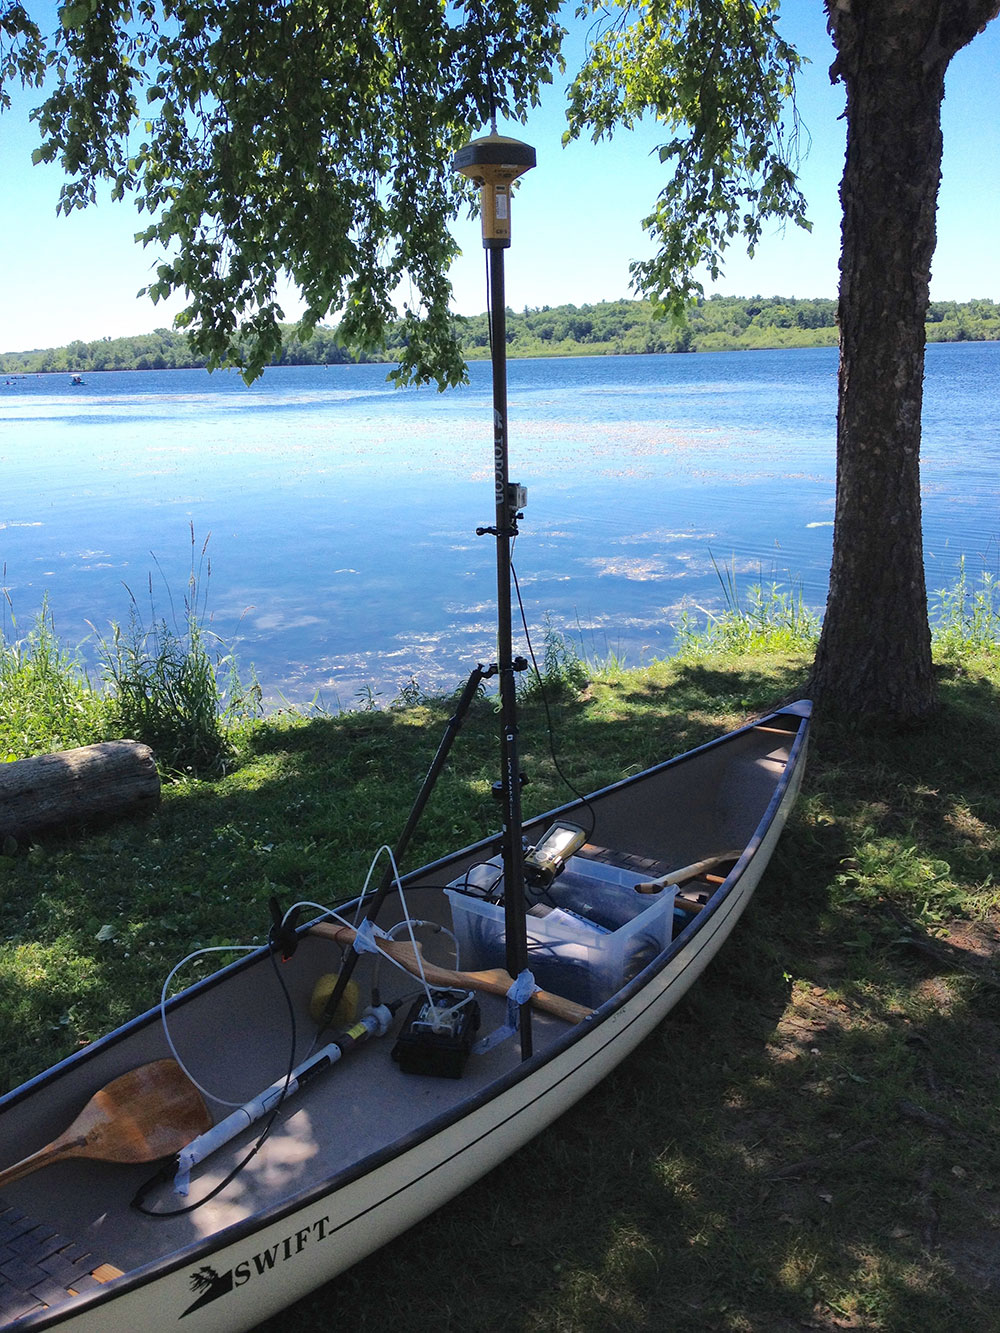 Canoe set up to measure location and elevation, water chemistry, and record video